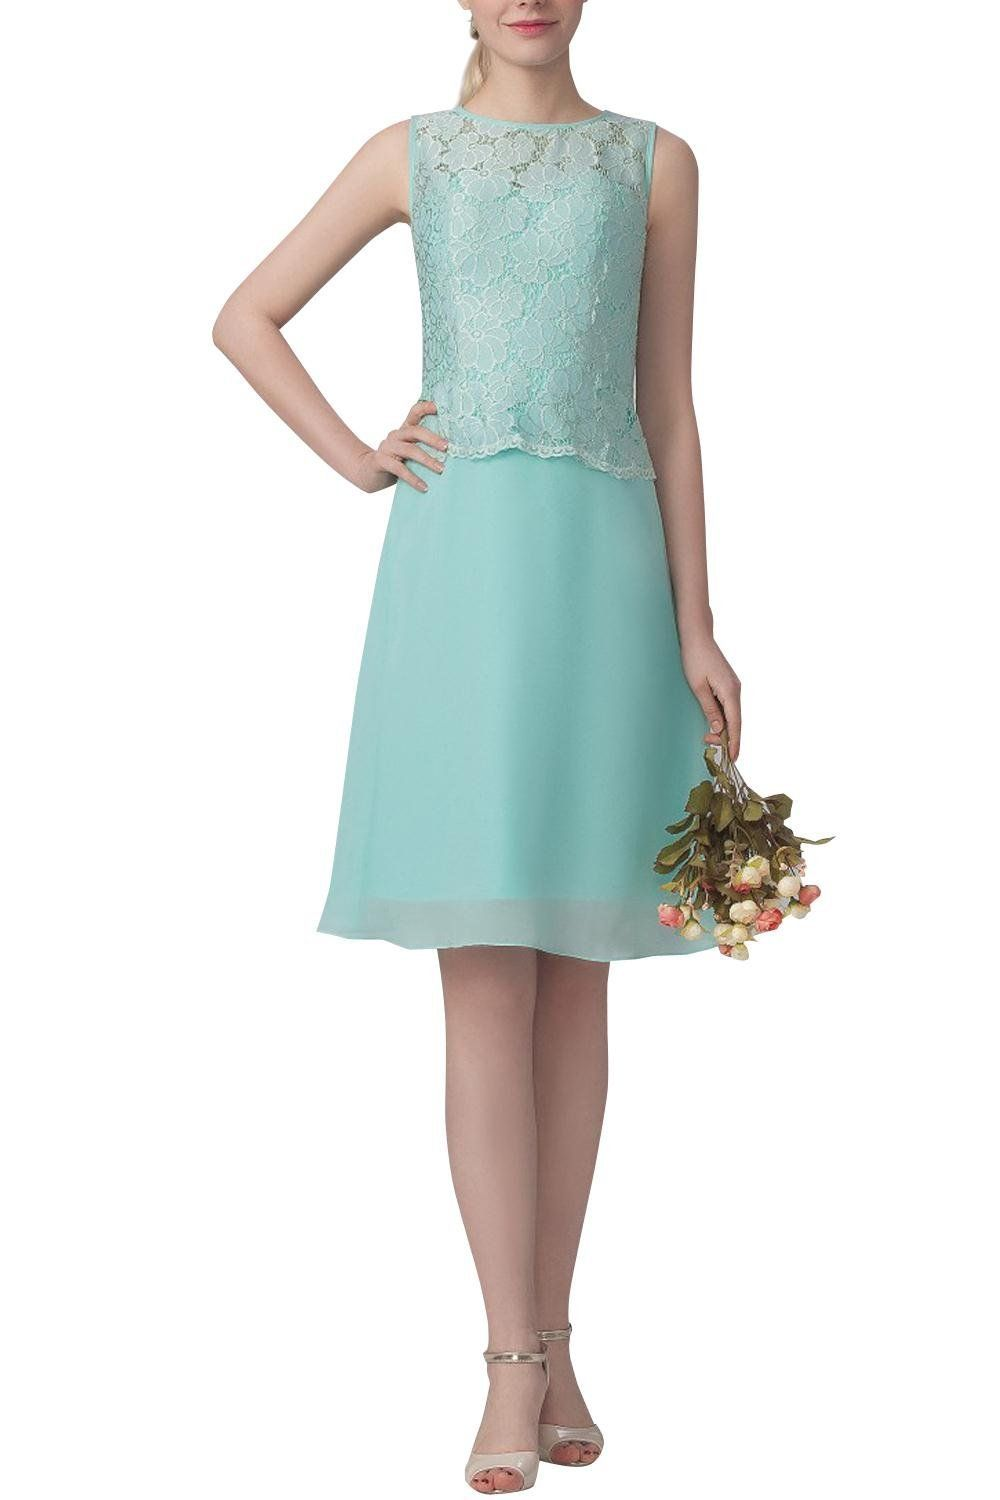 ORIENT BRIDE Short Wedding Party Dress Homecoming Dress Lace ...